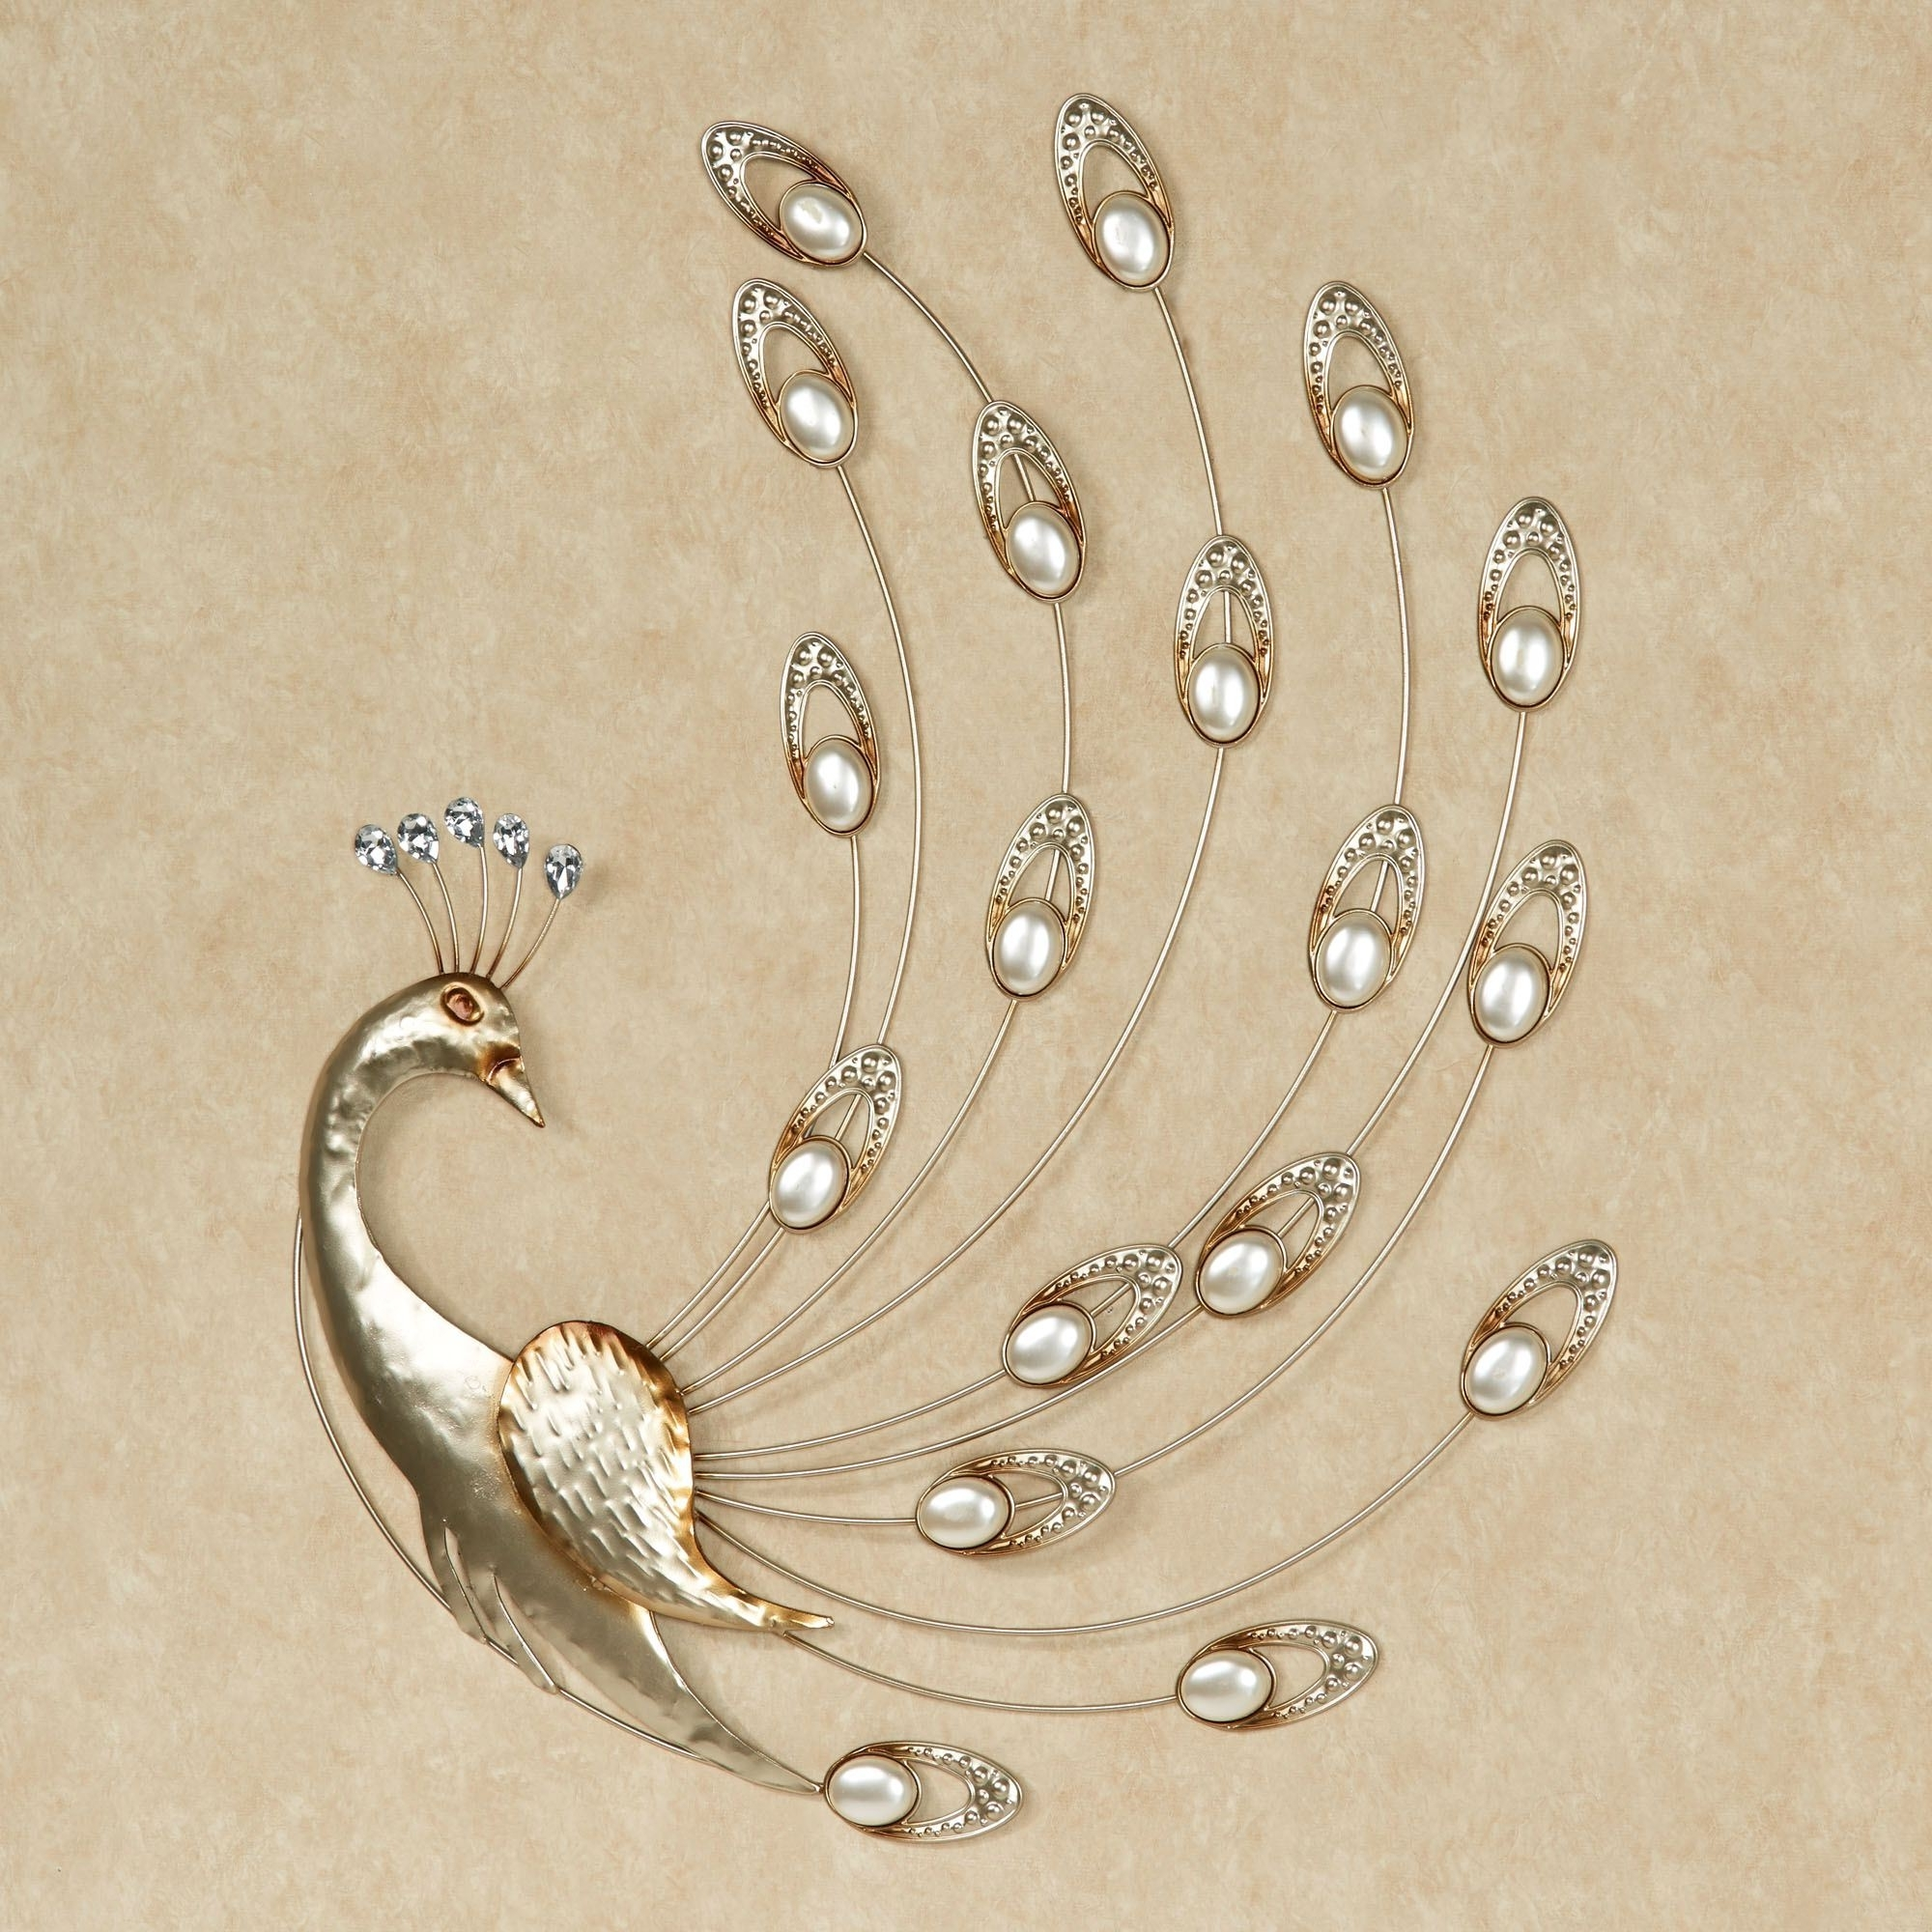 Julietta Pearl Peacock Metal Wall Art Regarding Current Touch Of Class Metal Wall Art (Gallery 11 of 15)